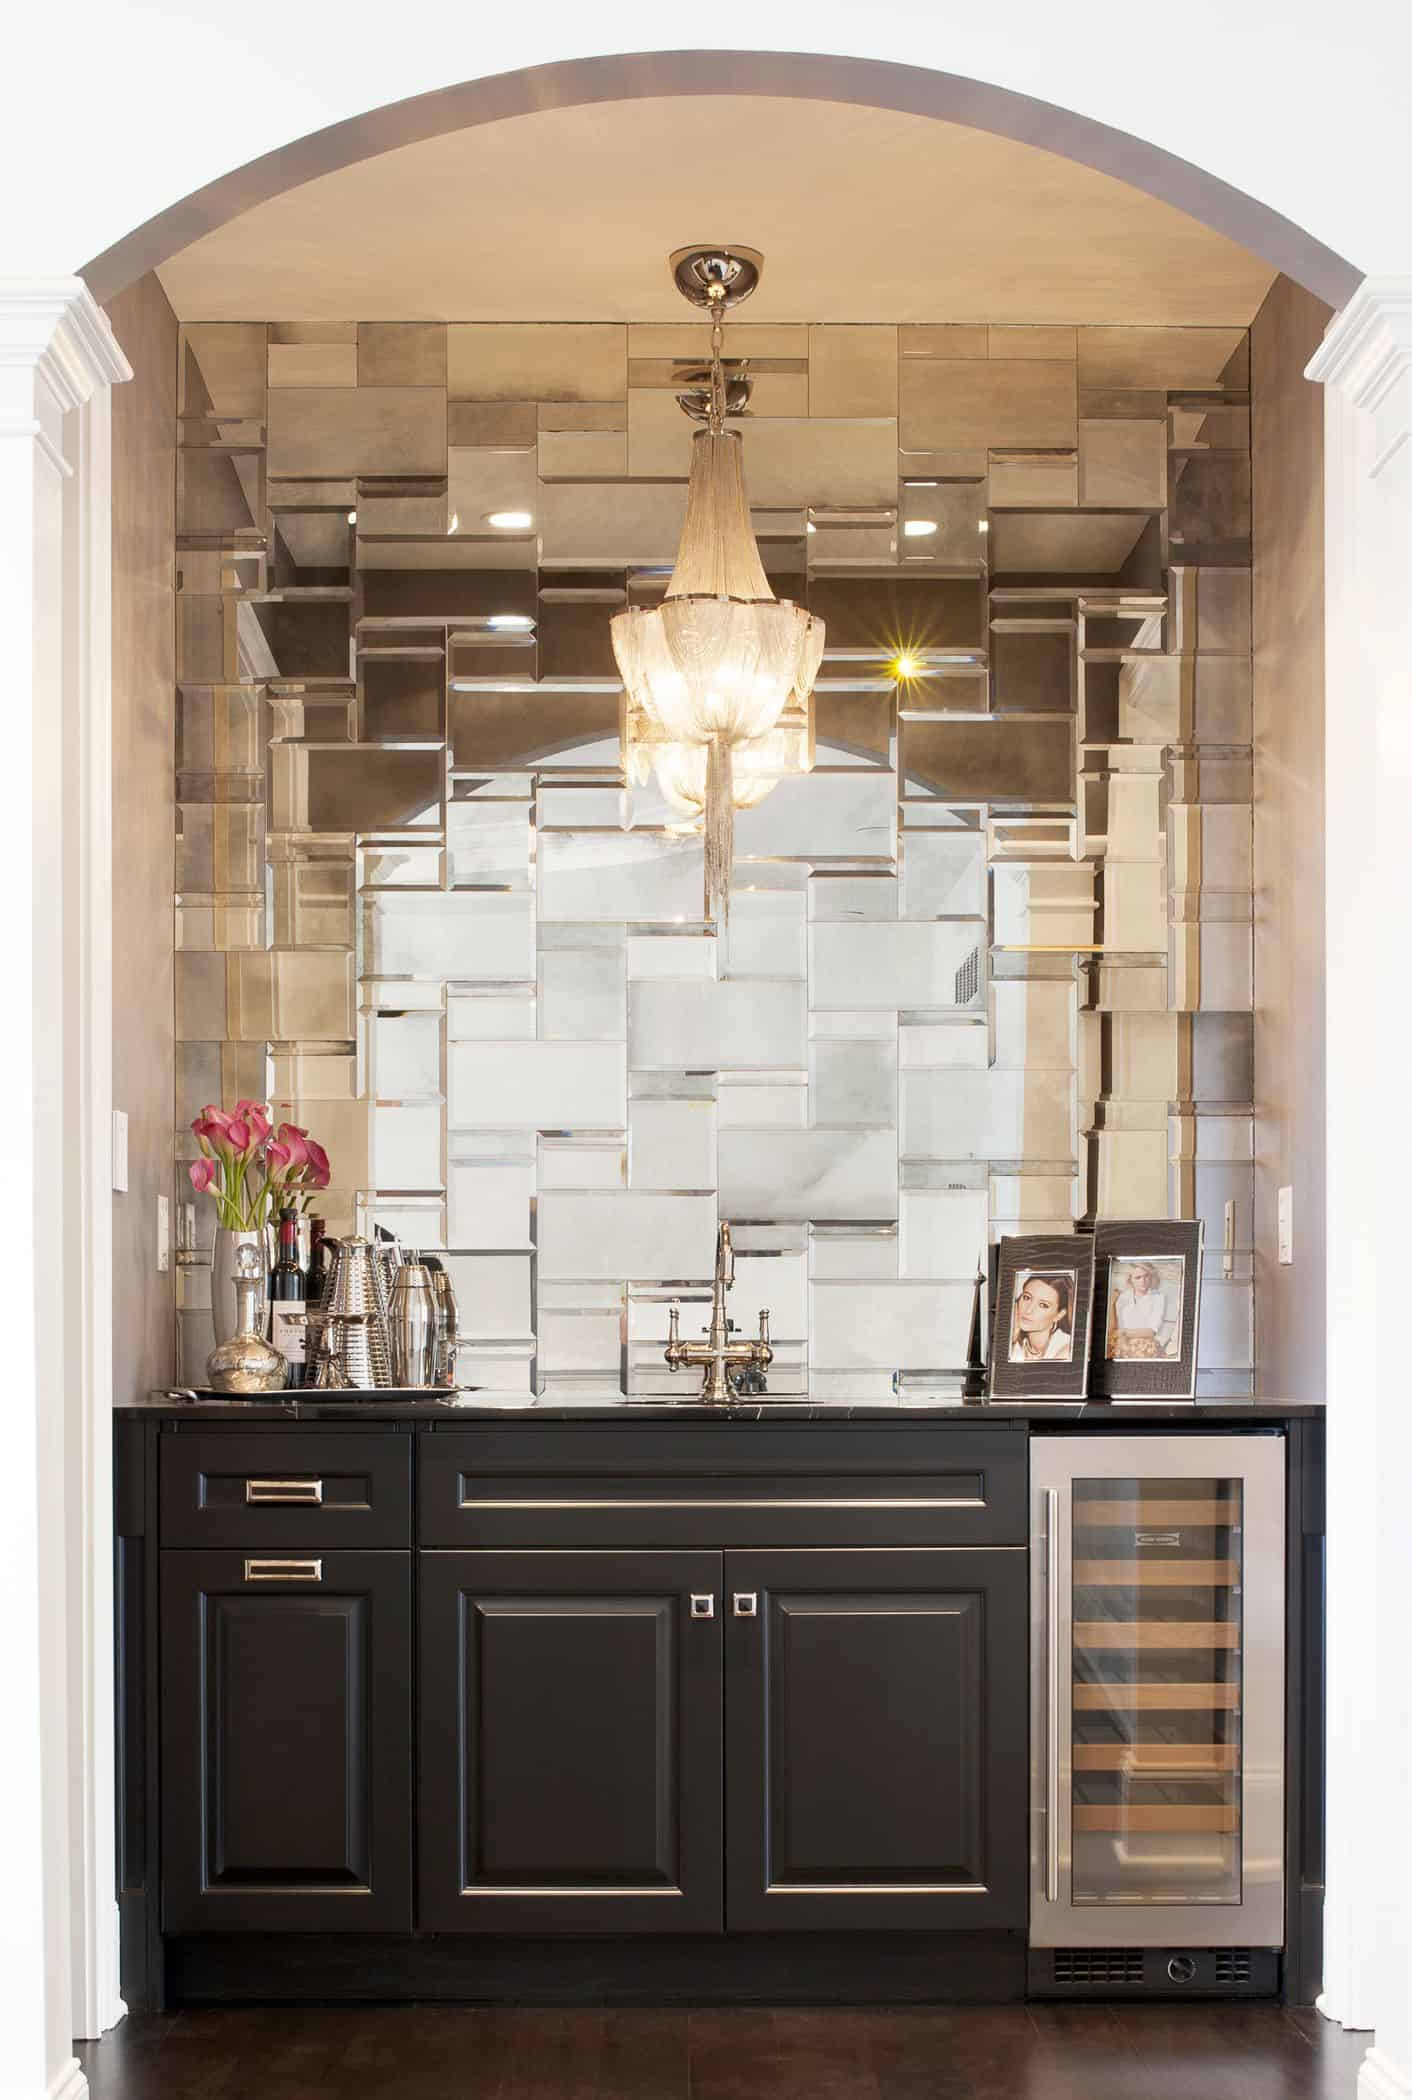 mirrored kitchen backsplash Outdated Home Trends That Could Be Making A Comeback